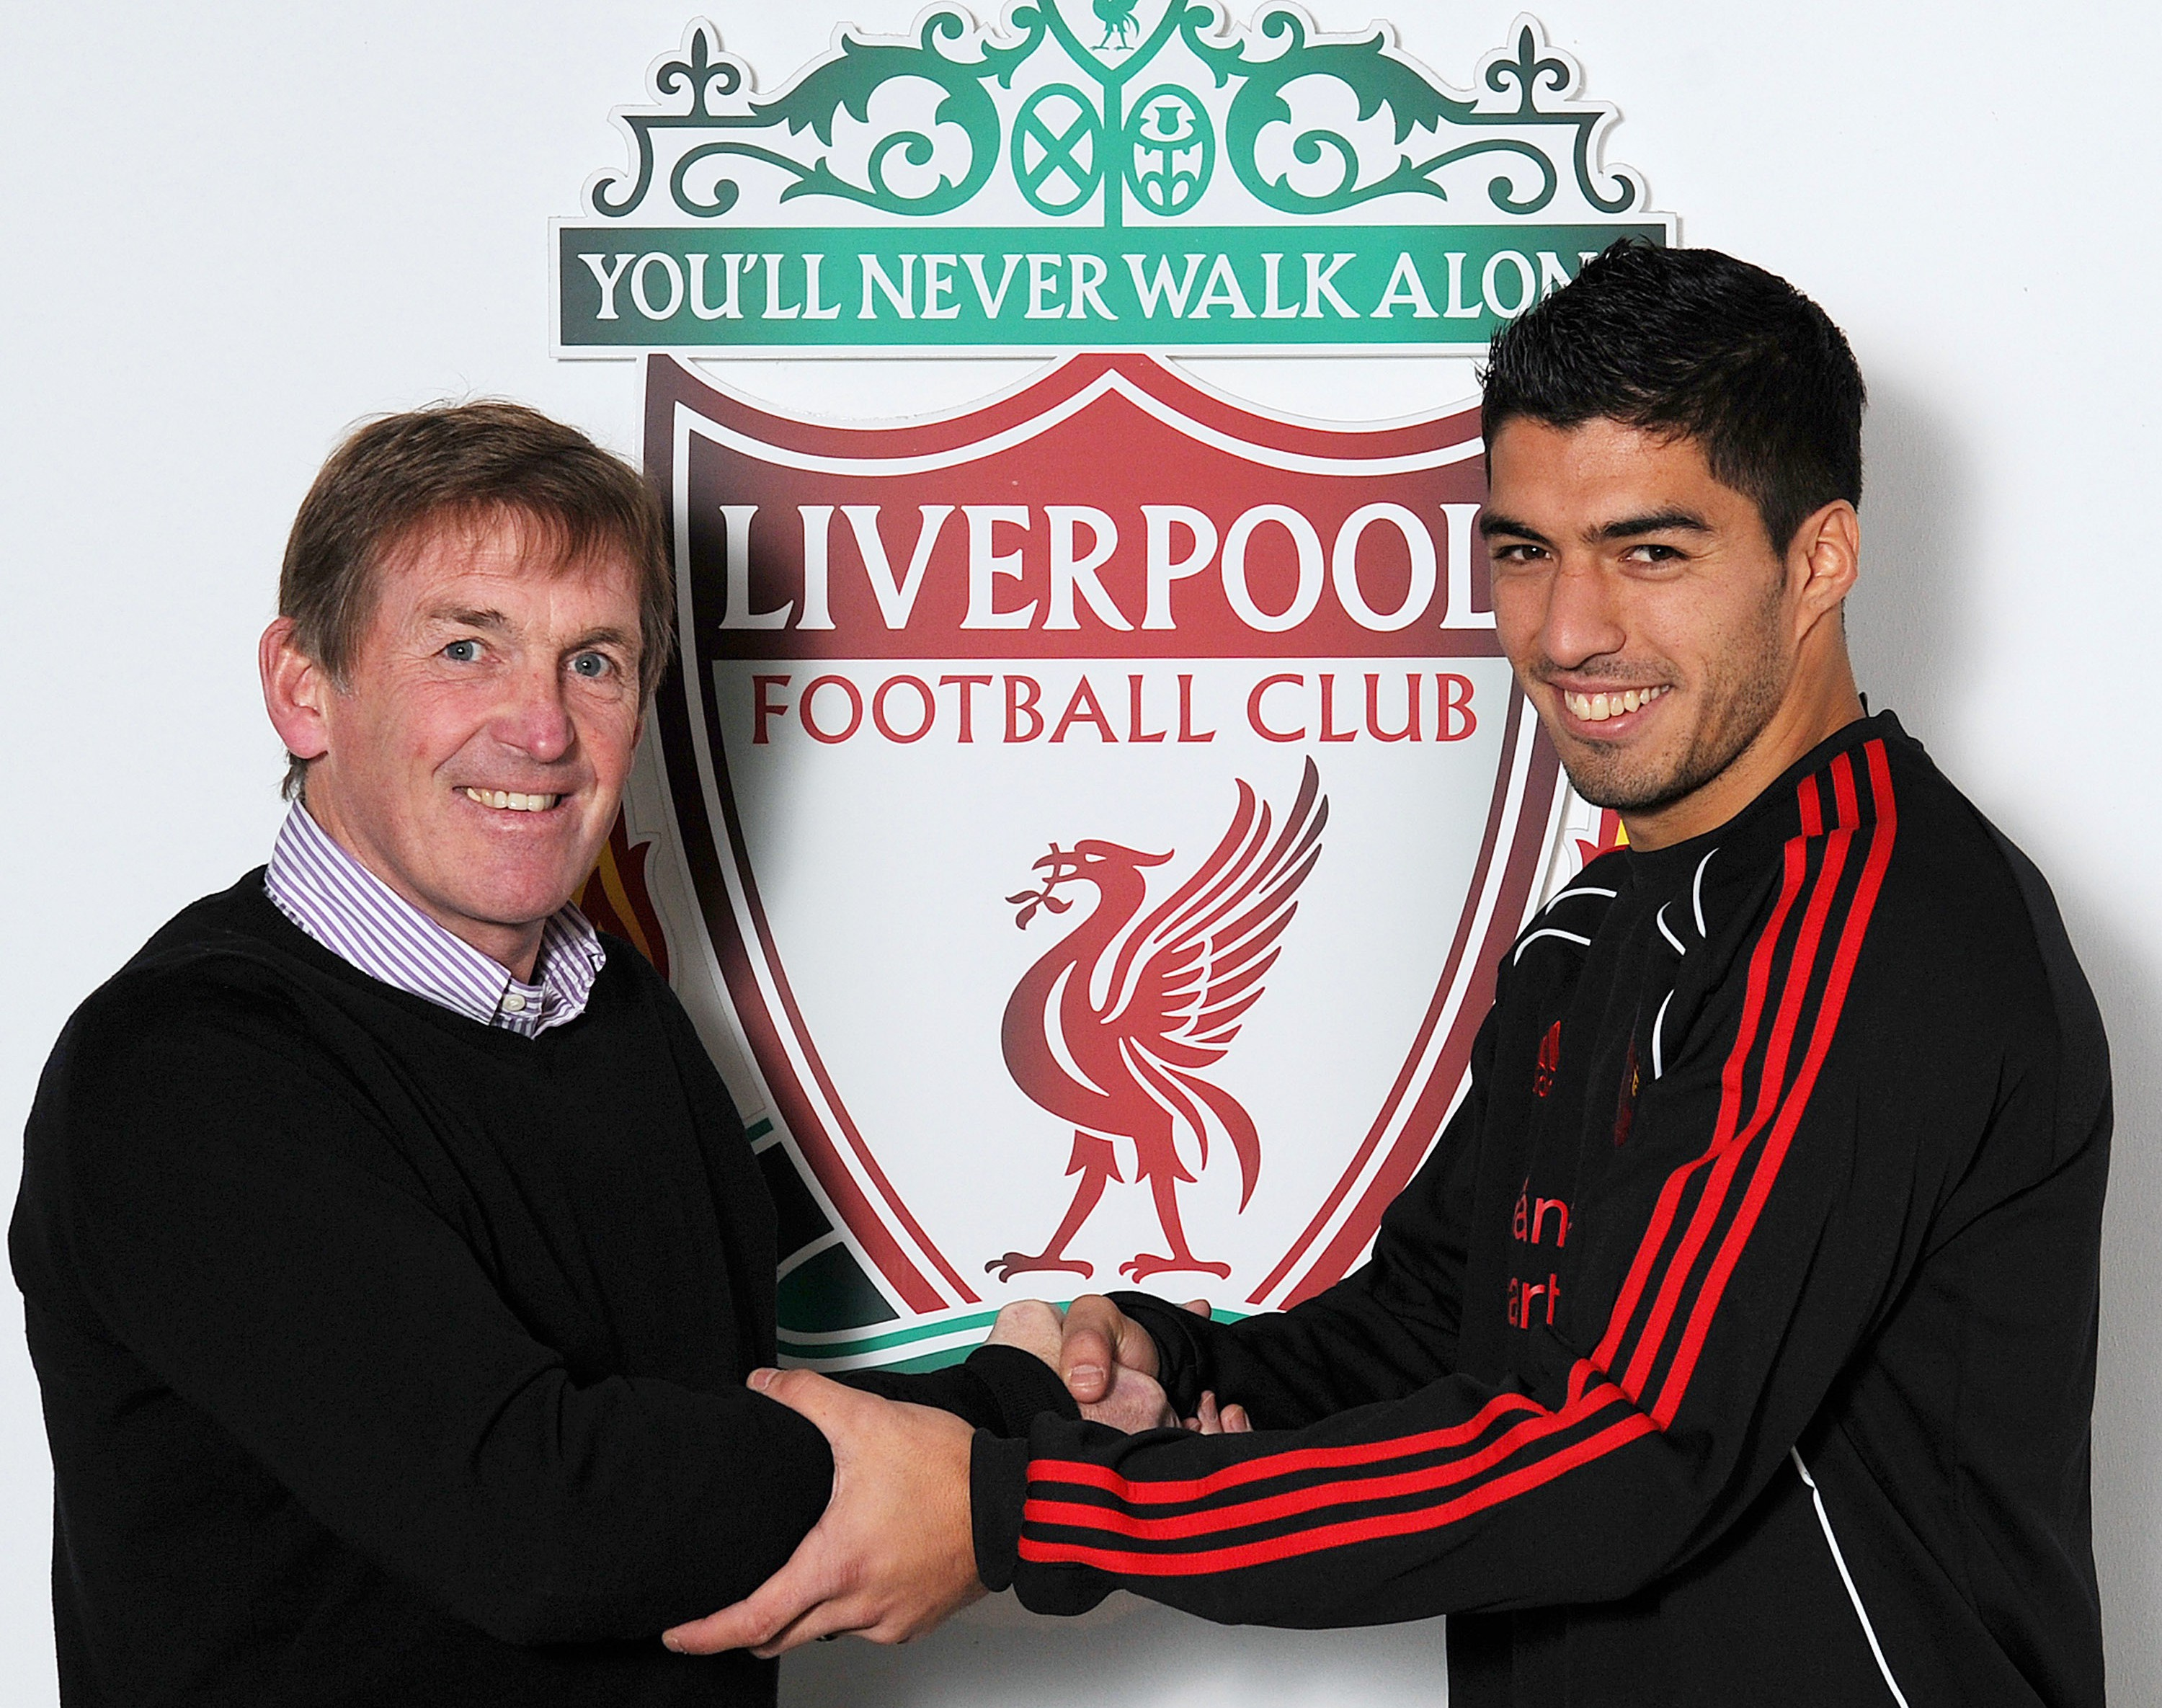 LIVERPOOL, ENGLAND - JANUARY 29: (THE SUN OUT) ***EXCLUSIVE COVERAGE*** (MINIMUM USAGE FEE APPLIES PER IMAGE - 250 GBP OR LOCAL EQUIVALENT AND ONLINE RATE 125 GBP OR LOCAL EQUIVALENT) Luis Suarez (R) of Liverpool shakes hands with Kenny Dalglish manager of Liverpool at Melwood training ground on January 29, 2011 in Liverpool, England. (Photo by John Powell/Liverpool FC via Getty Images)